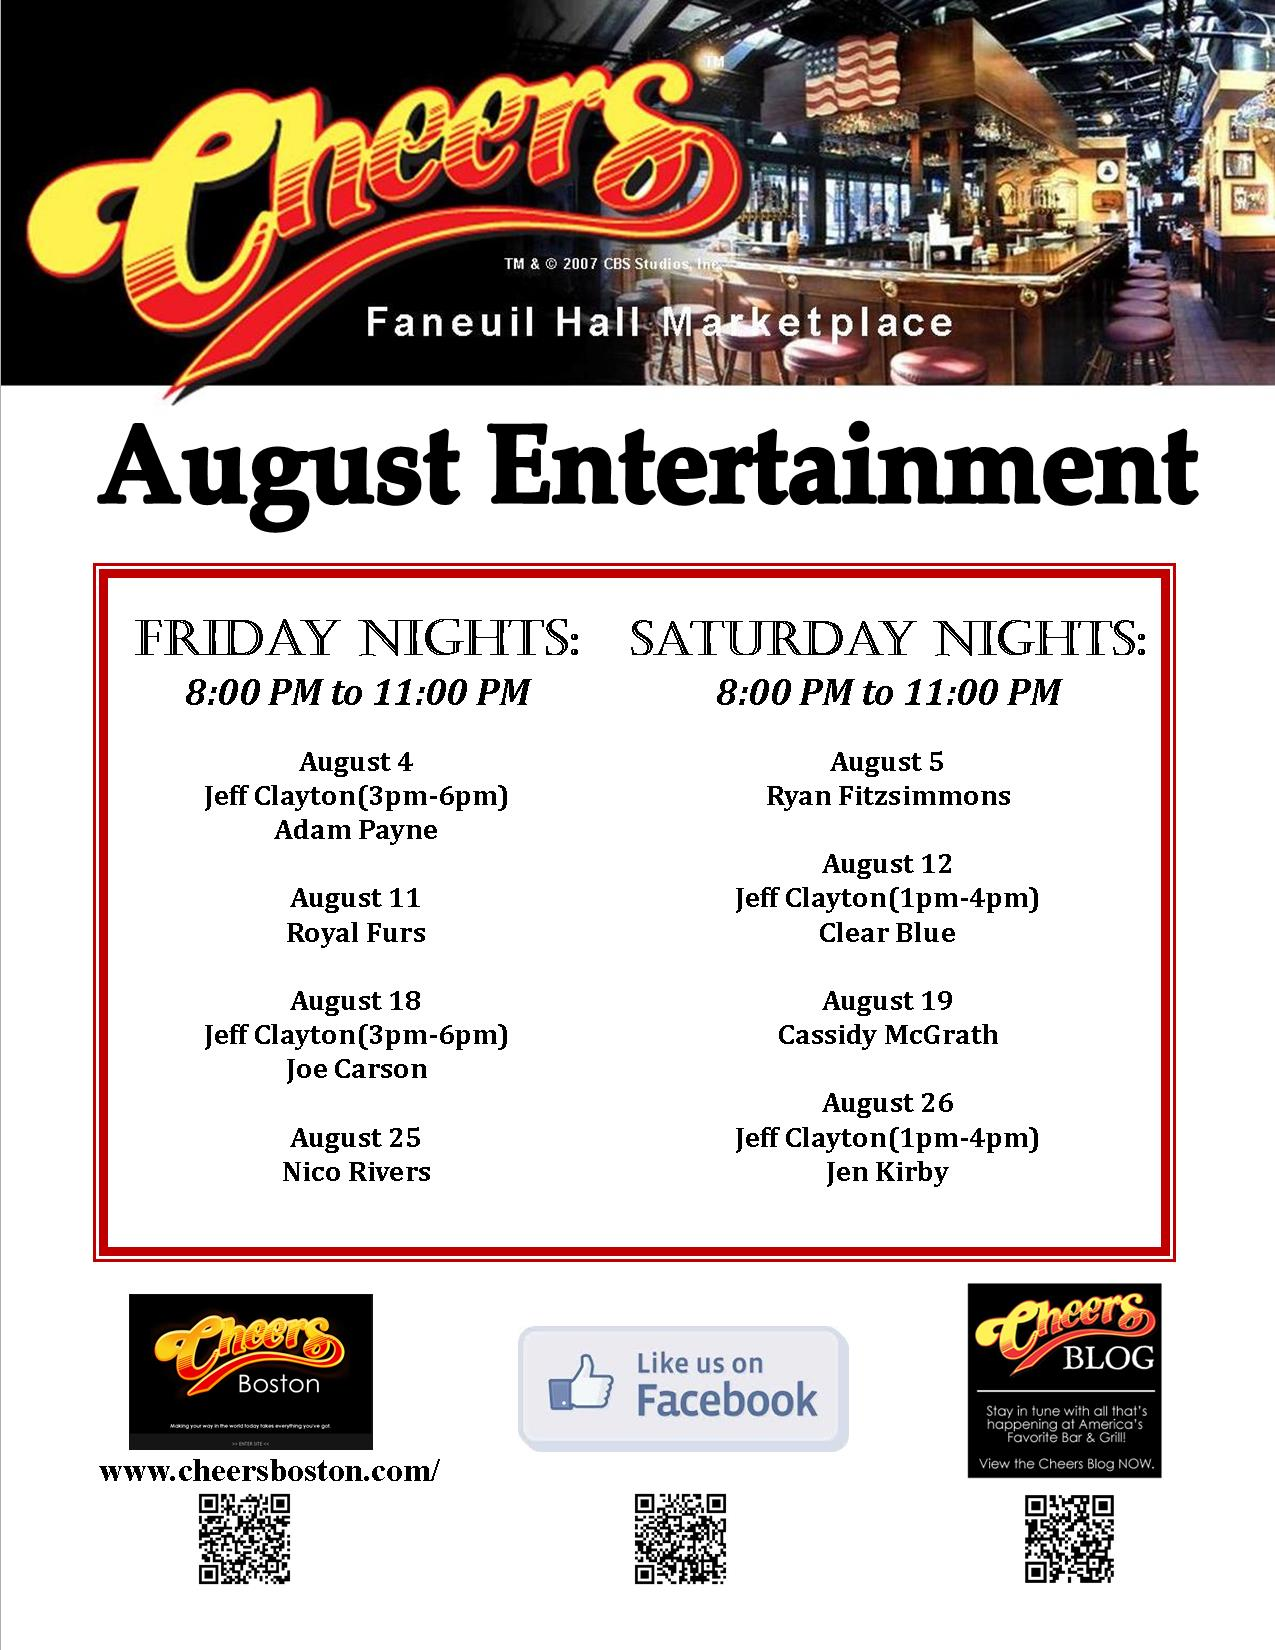 August Live Entertainment at Cheers Faneuil Hall